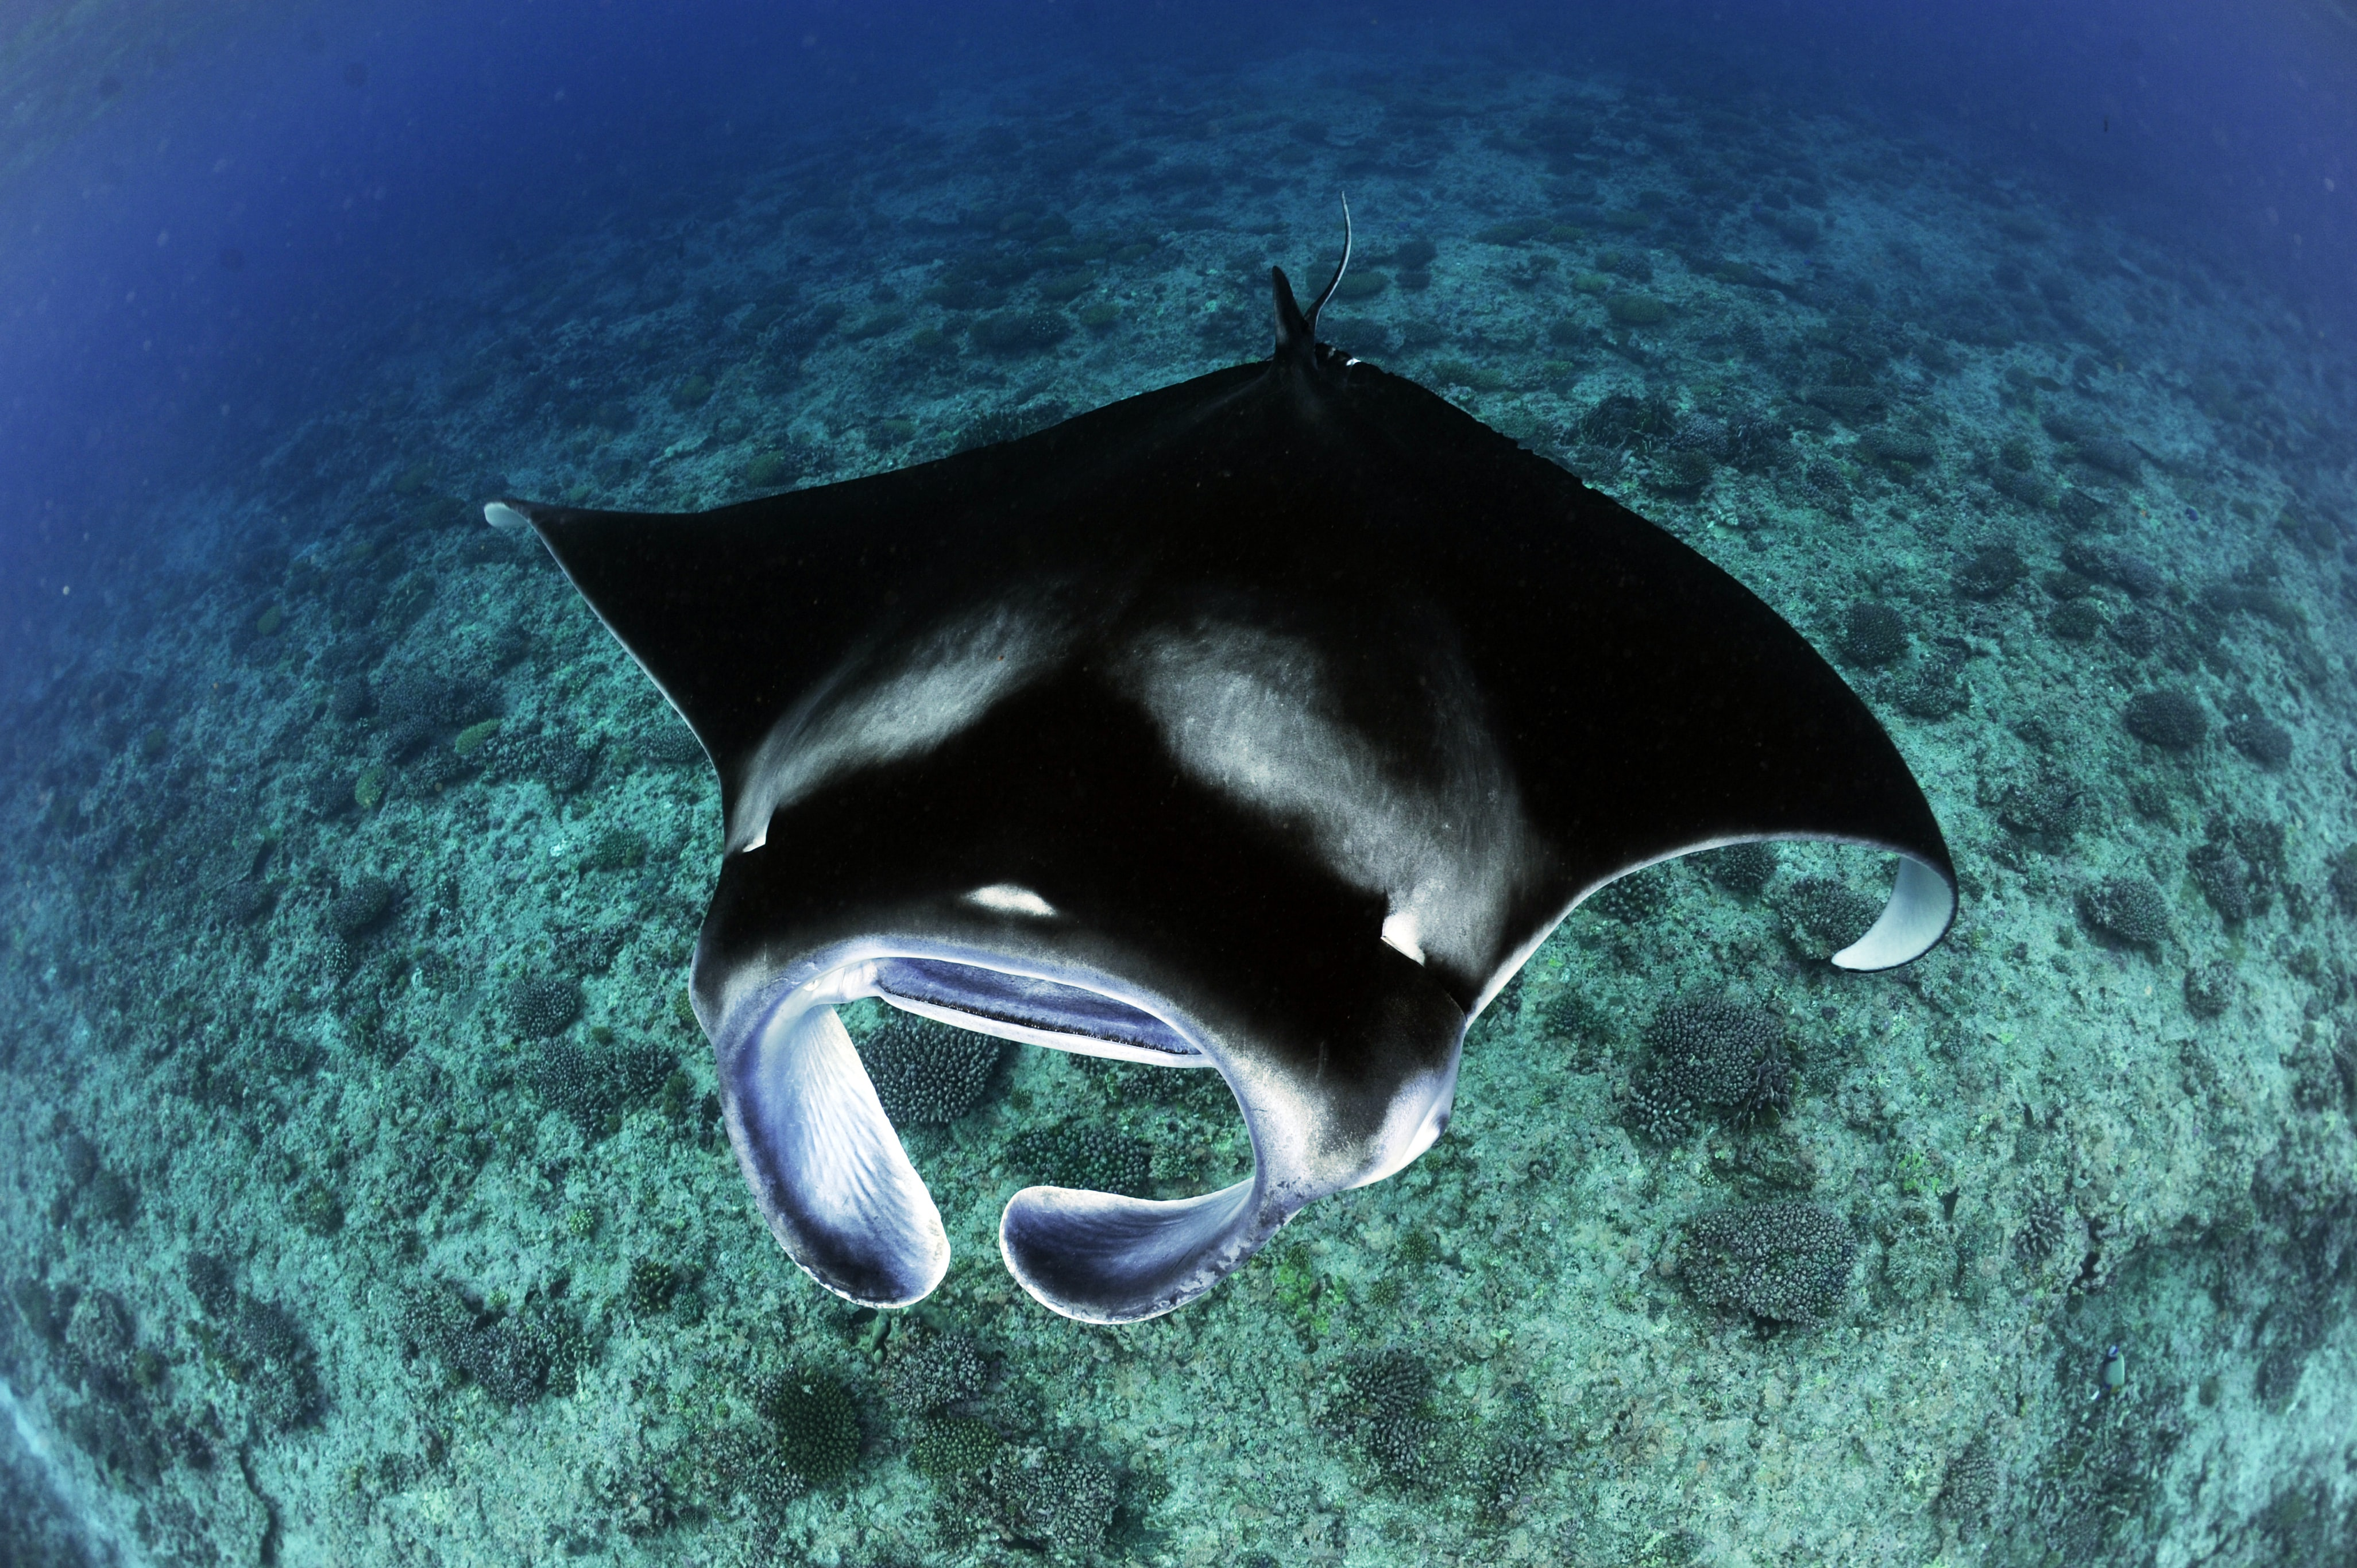 Reef Manta Ray, Manta alfredi, Feeding Over Reef, D'Arros Island, Amirantes, Seychelles  Guy Stevens, Manta Trust 2016.JPG  Introducing: The Carl F. Bucherer Patravi ScubaTec Manta Trust Reef Manta Ray Manta alfredi Feeding Over Reef DArros Island Amirantes Seychelles  Guy Stevens Manta Trust 2016